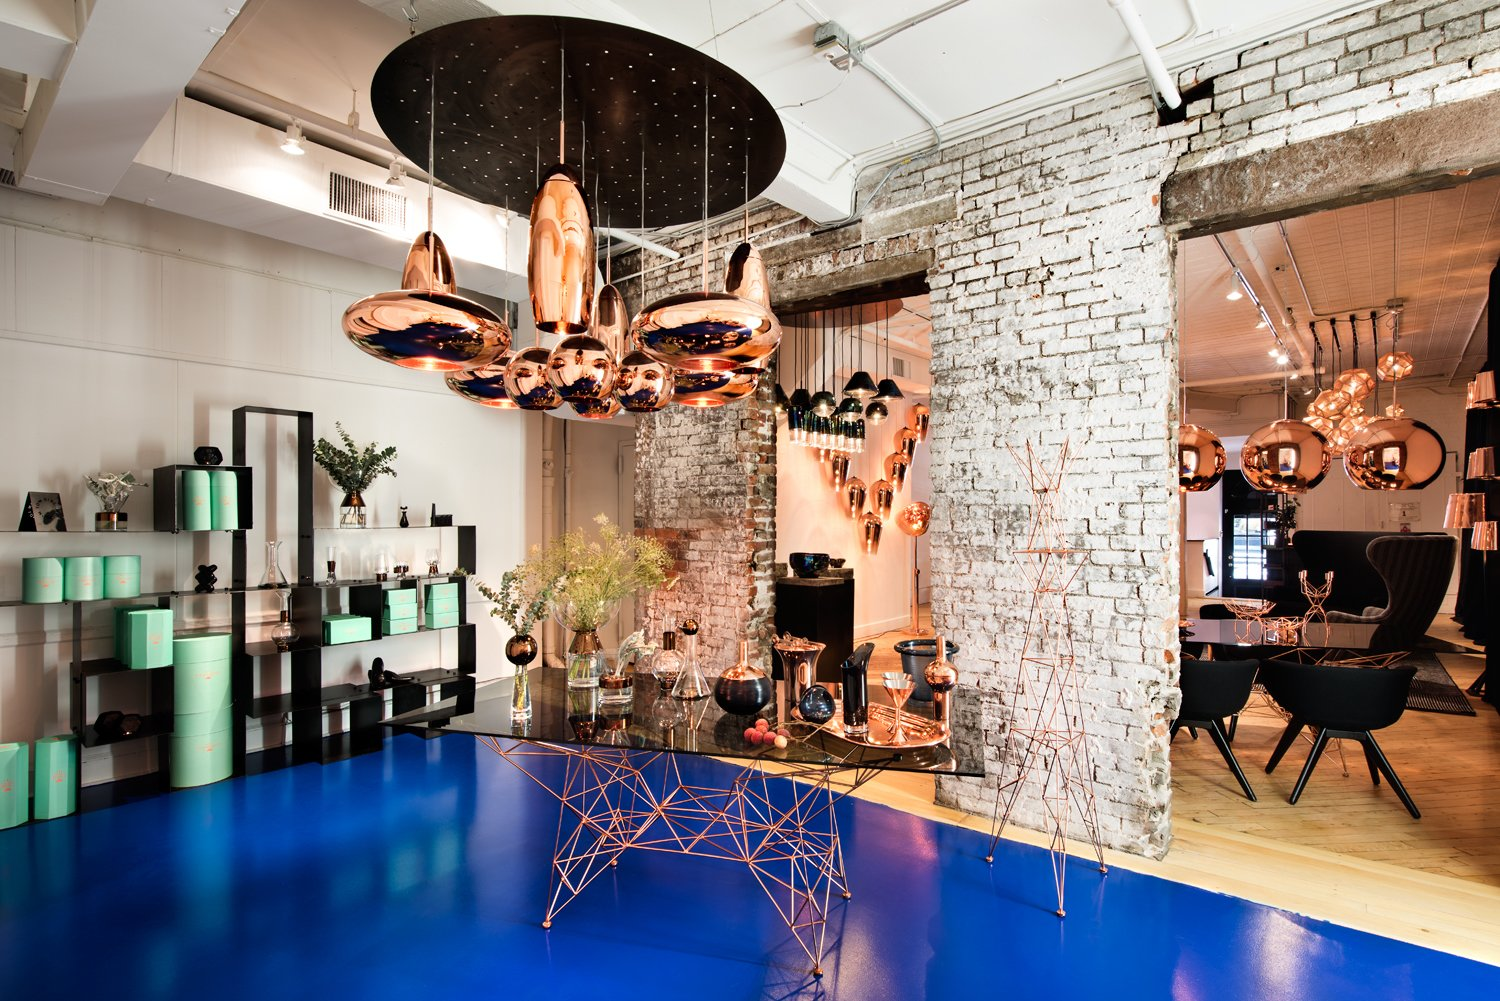 Tom Dixon's new Manhattan showroom at 19 Howard Street, featuring various pendants and tabletop items from the designer's Copper series, and the Pylons dining table, made from a copper-plated steel rod base and smoked glass surface.  Photo 2 of 3 in Twenty Minutes With:  Tom Dixon